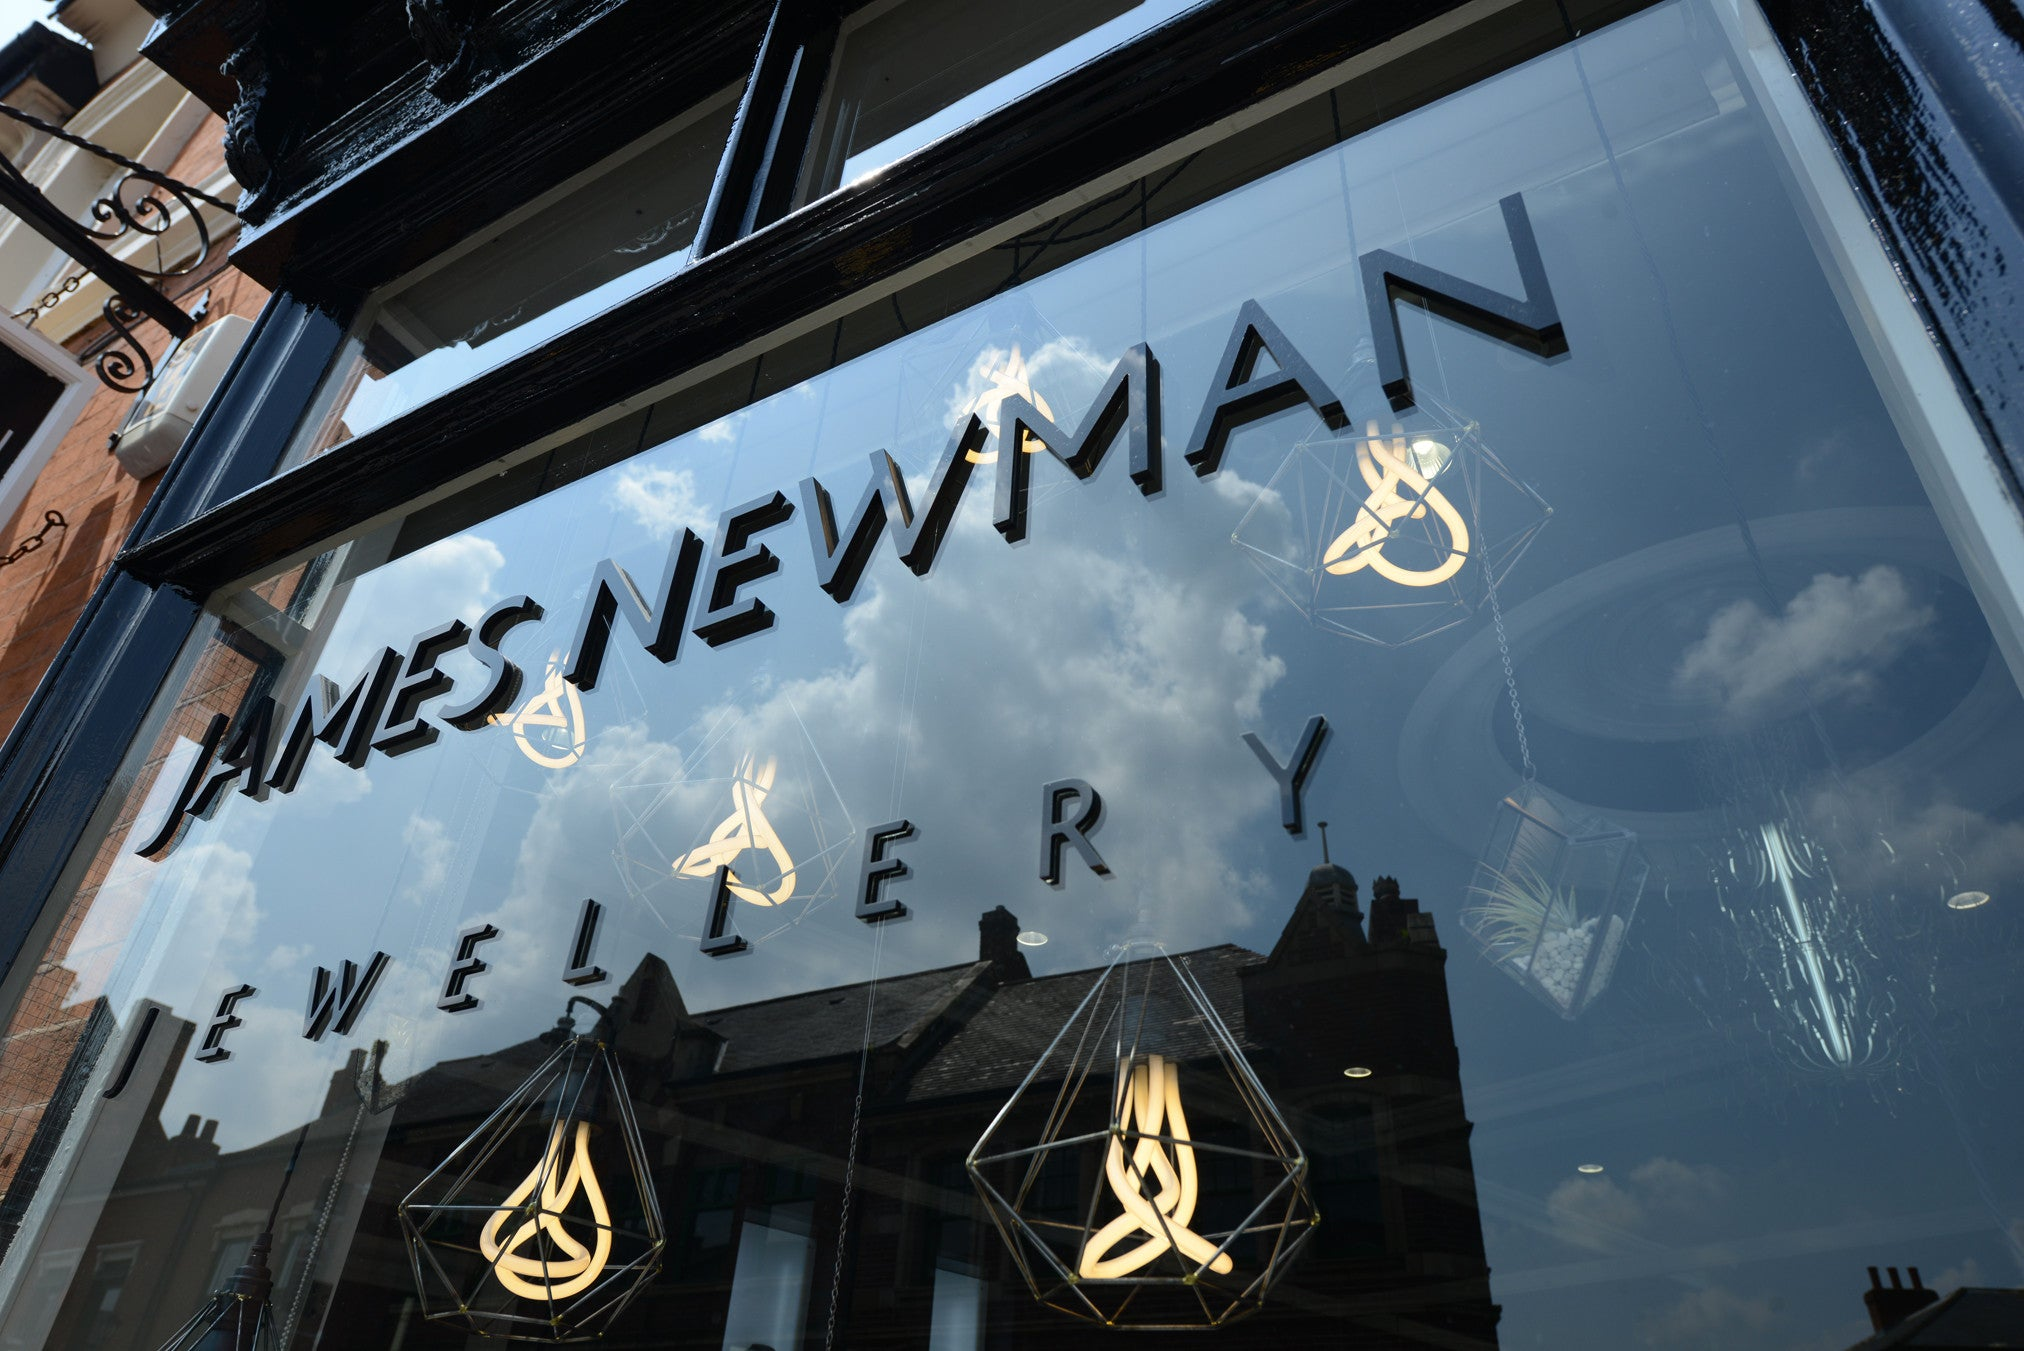 How To Find Our Shop In Birmingham Jewellery Quarter James